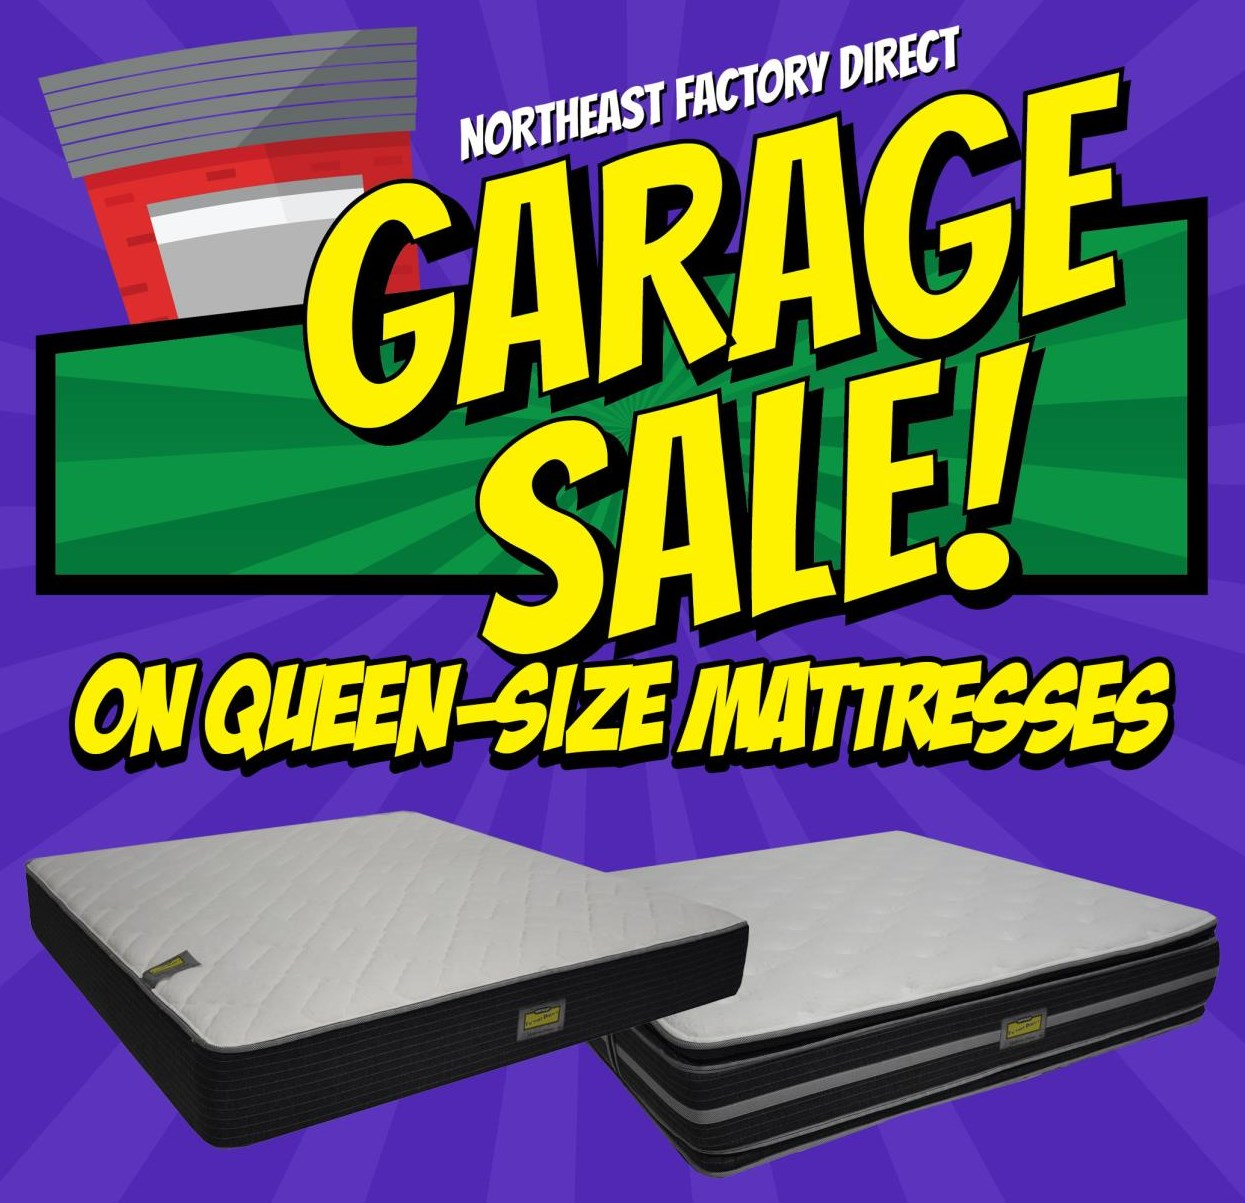 Northeast Factory Direct Garage Sale 2020